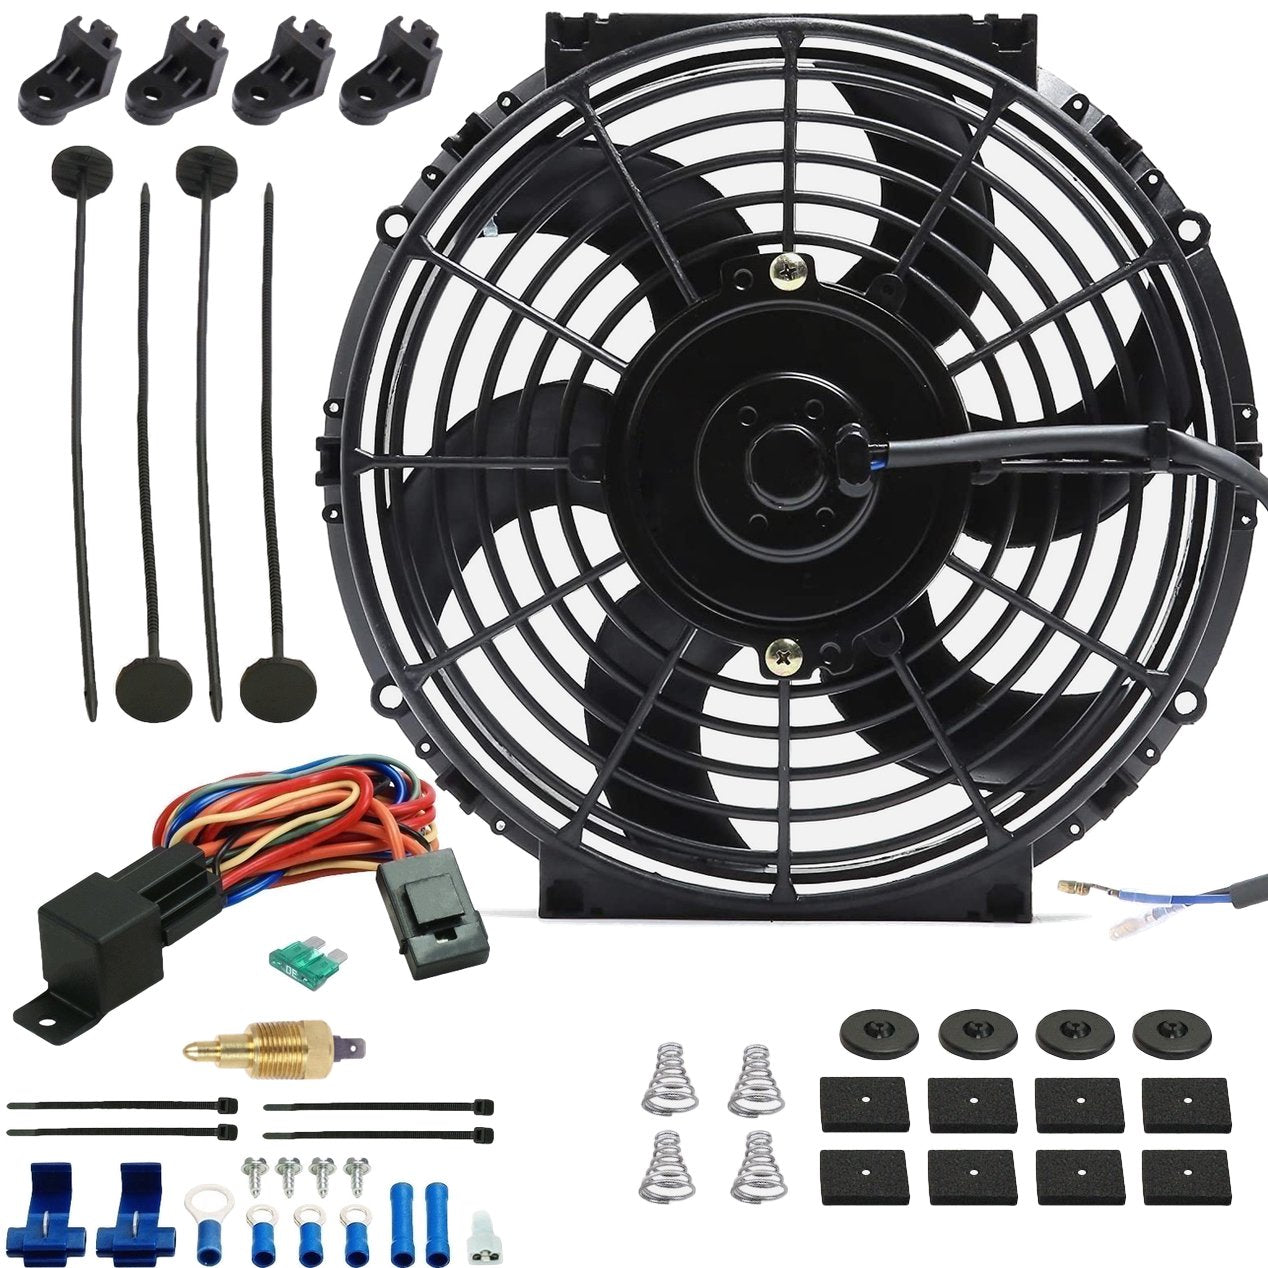 "10"" Inch 90w Motor Electric Radiator Cooling Fan NPT Ground Thermostat Temperature Switch Kit-Single Electric Fans-American Volt-1/8"" NPT-140'F On - 125'F Off-American Volt"